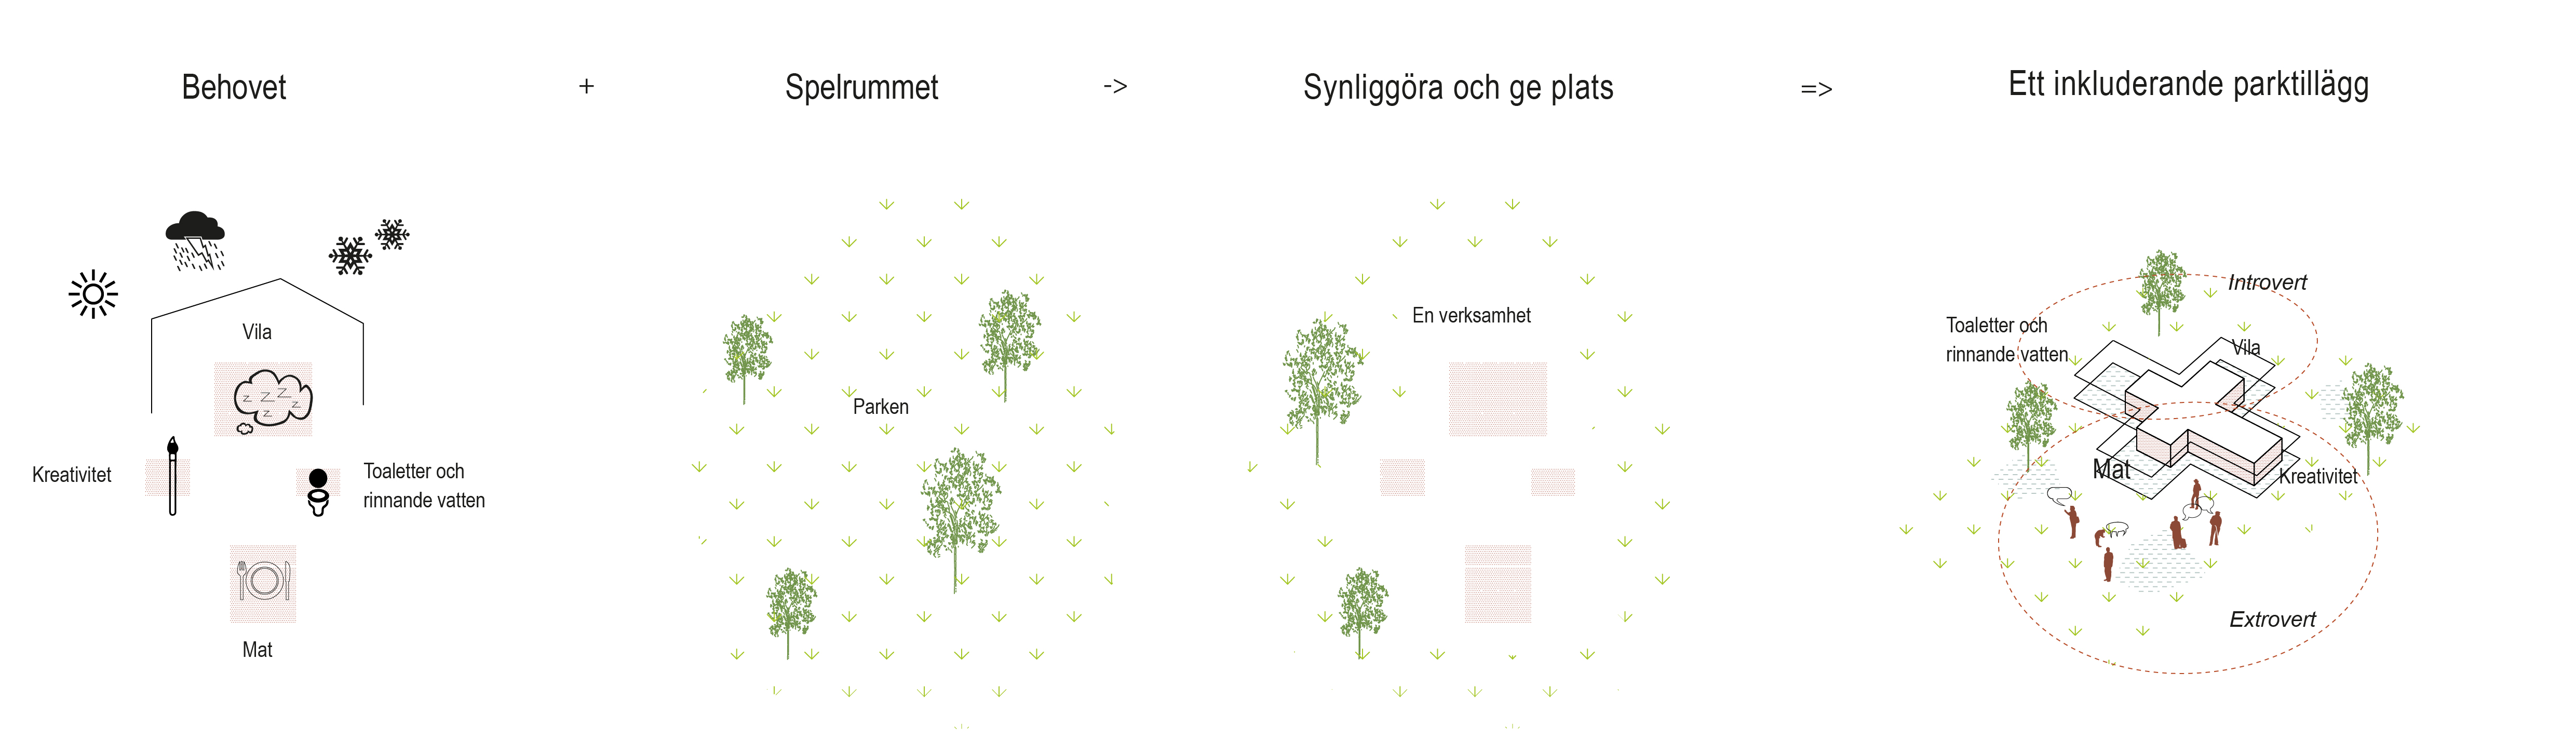 Park+ Hemlös_LAND_2015_diagram koncept